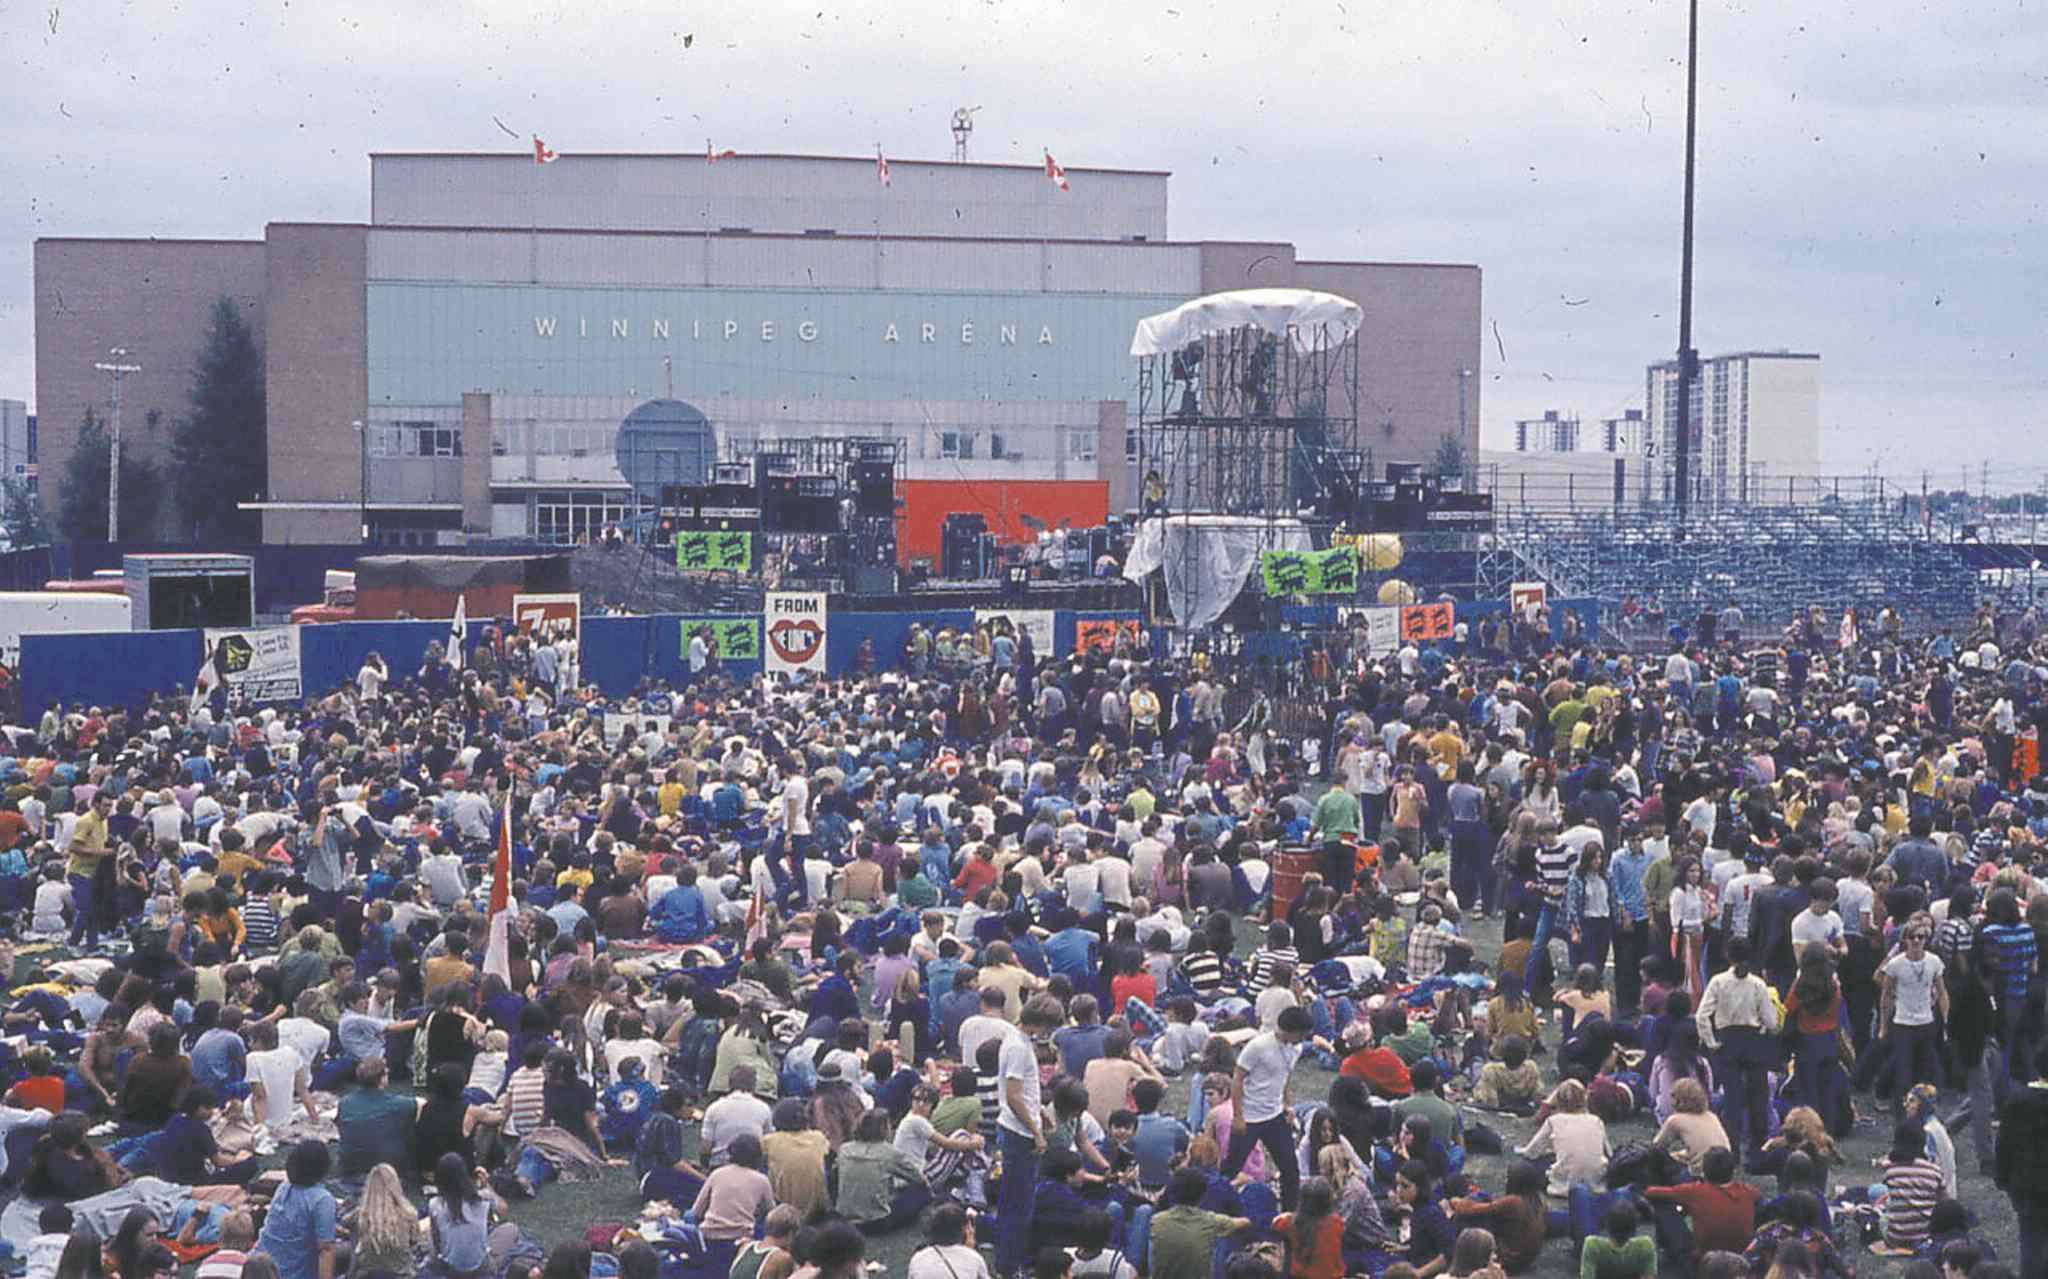 The scene at the stadium before the skies opened.